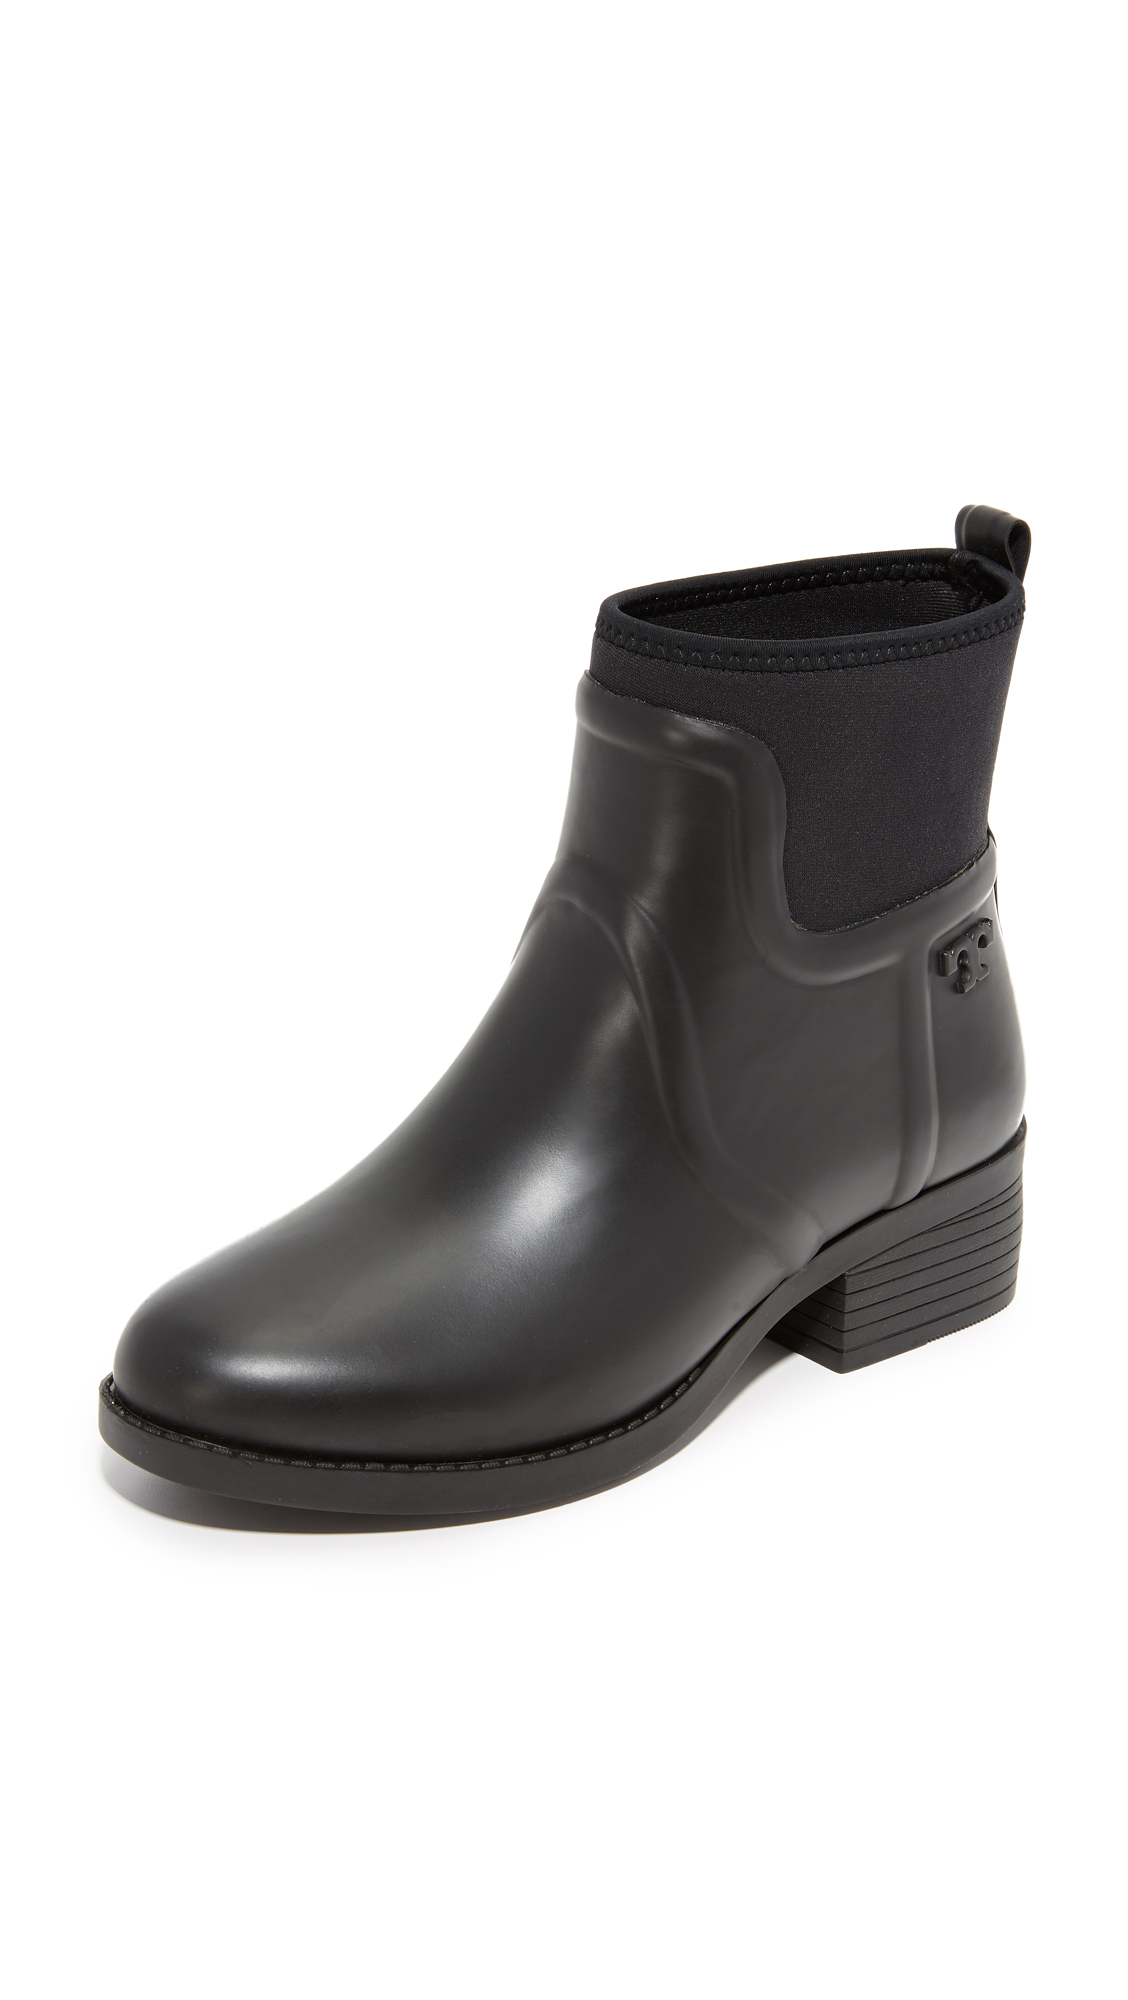 Tory Burch April Rain Booties - Black